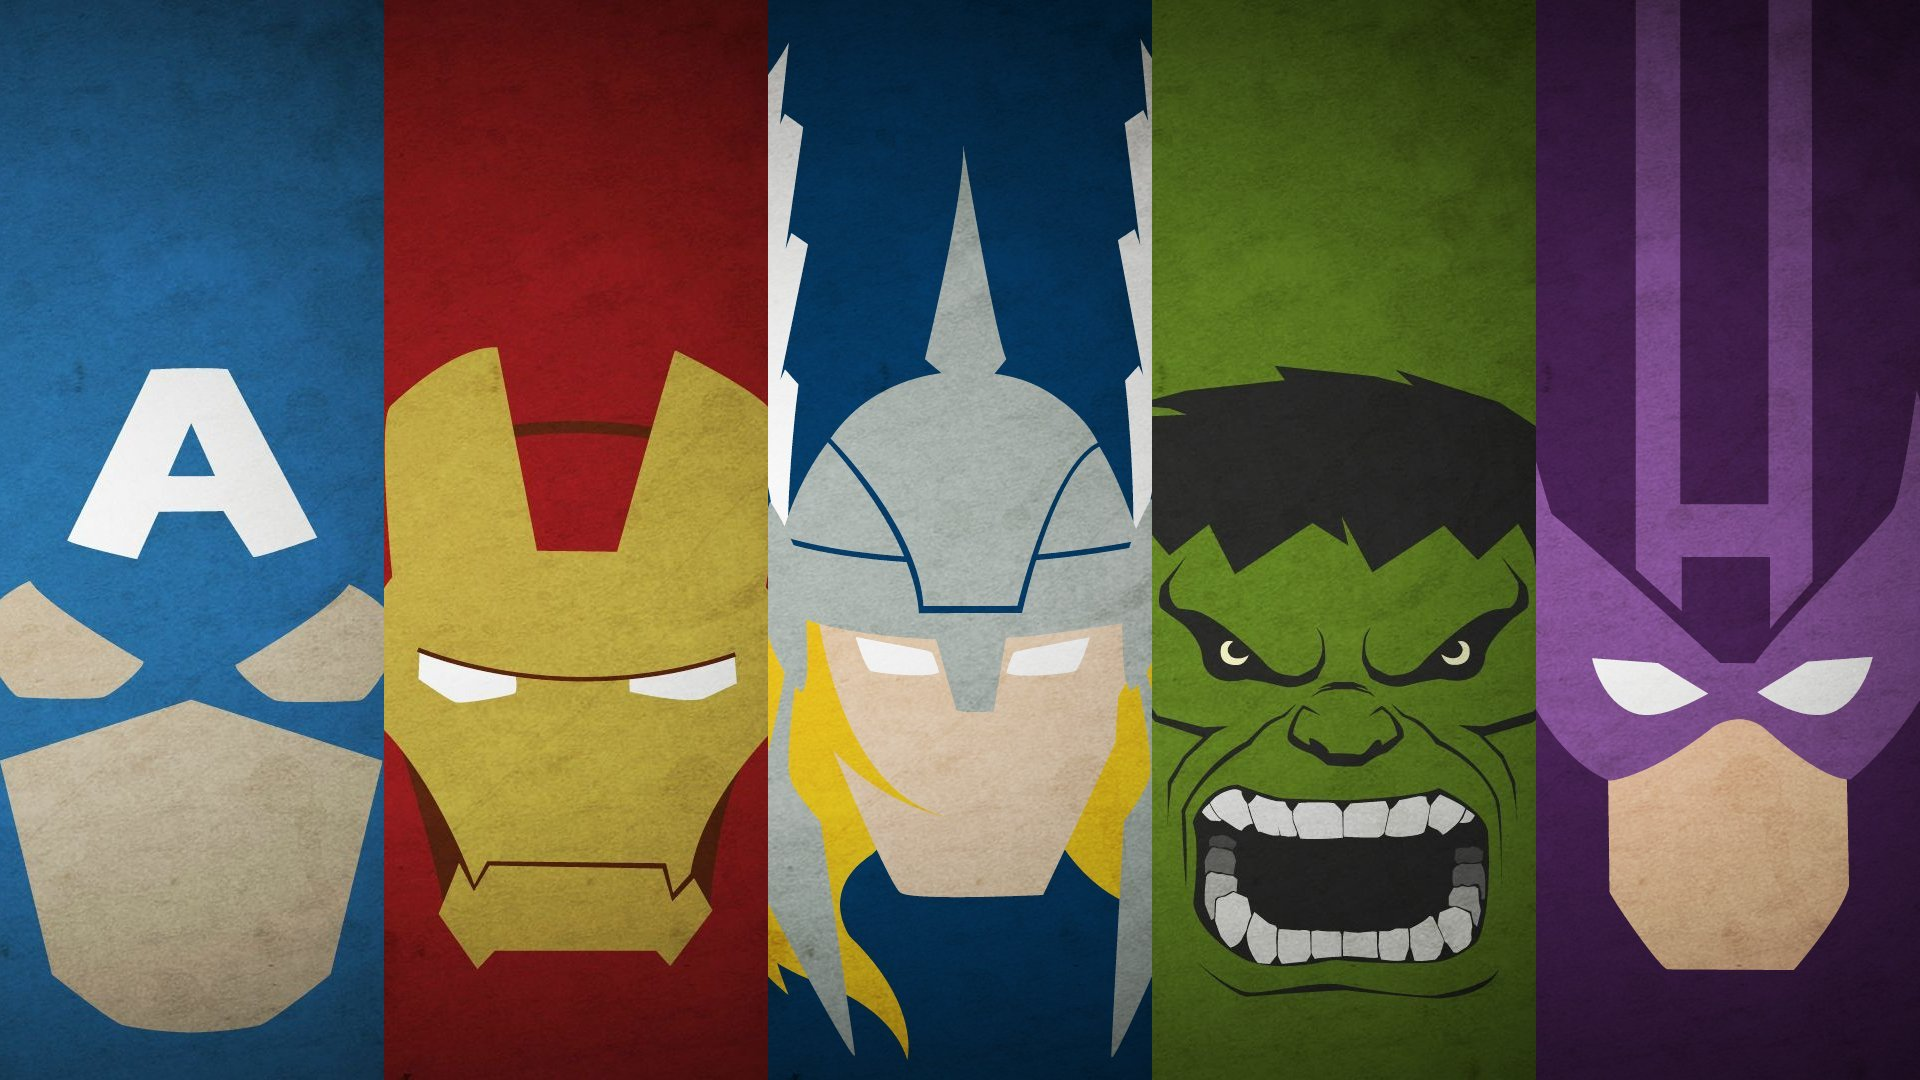 Top Wallpaper Marvel Minimalistic - avengers-wallpaper-deteched4  Pictures_594635.jpg?fit\u003d1920%2C1080